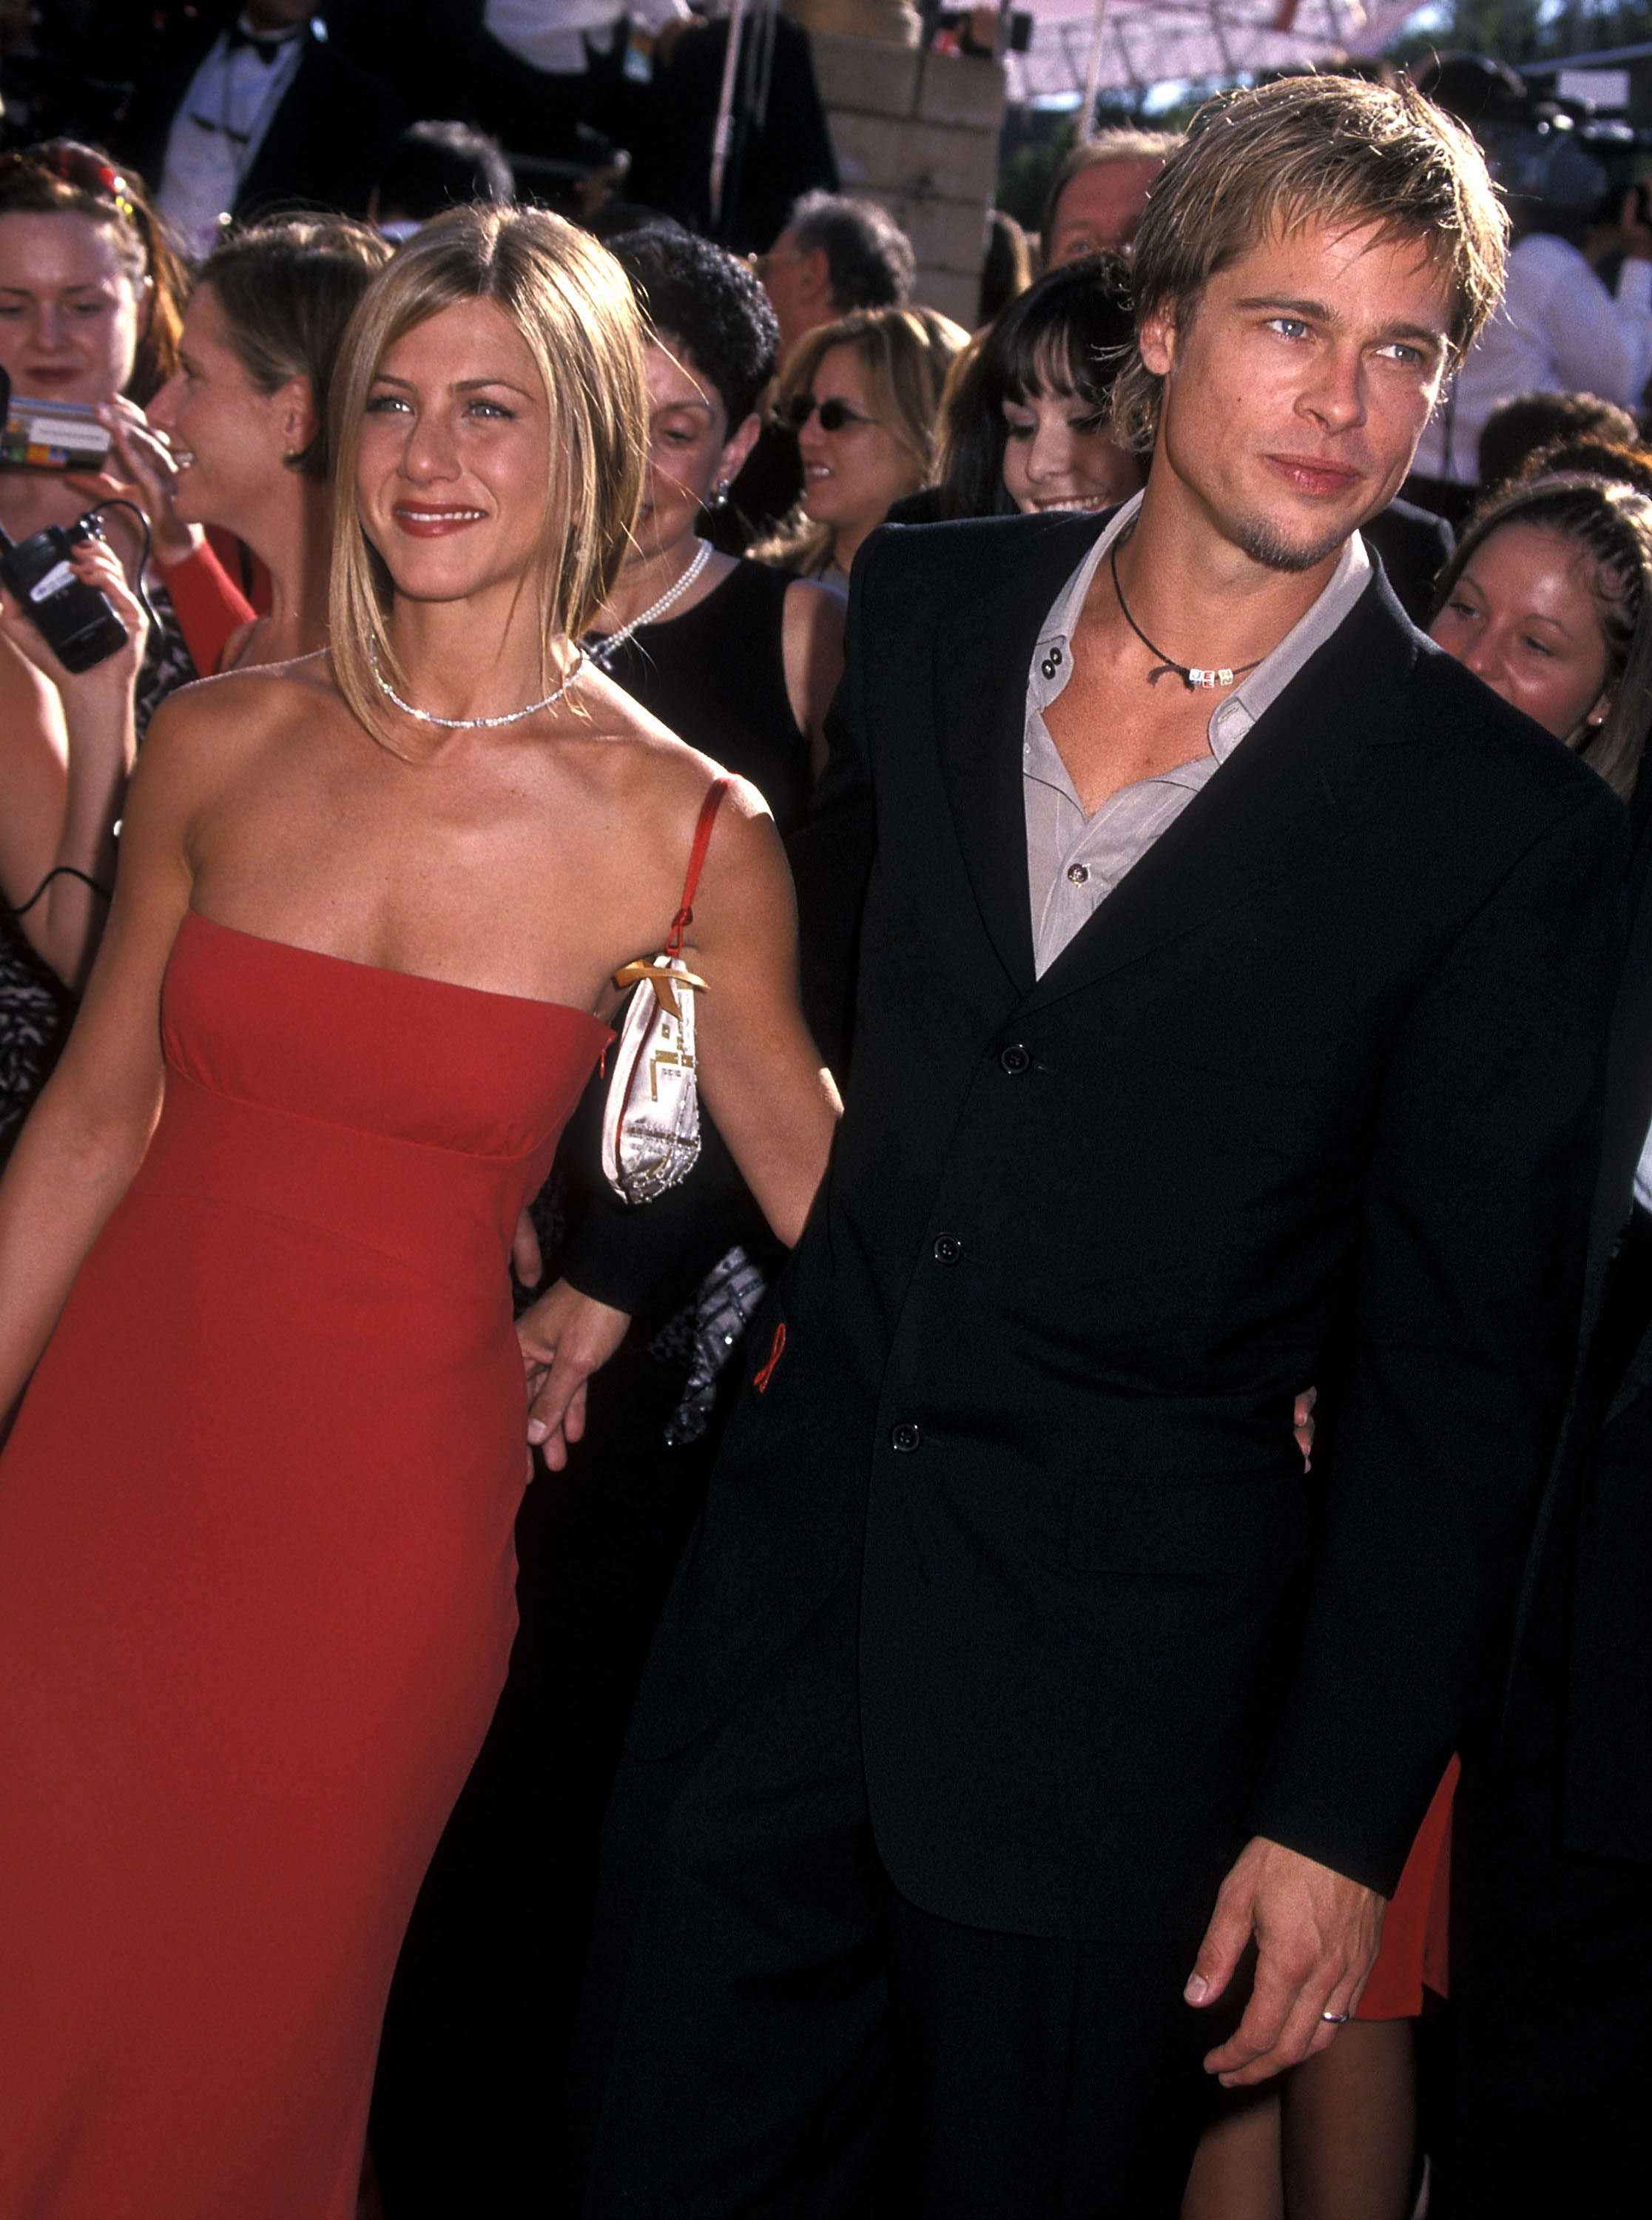 Brad Pitt and Jennifer Aniston Relationship Timeline - The newlyweds hit up the 52nd Primetime Emmy Awards, where Aniston was up for Outstanding Supporting Actress in a Comedy Series ( Friends ). She lost the prize to Megan Mullally ( Will & Grace ).